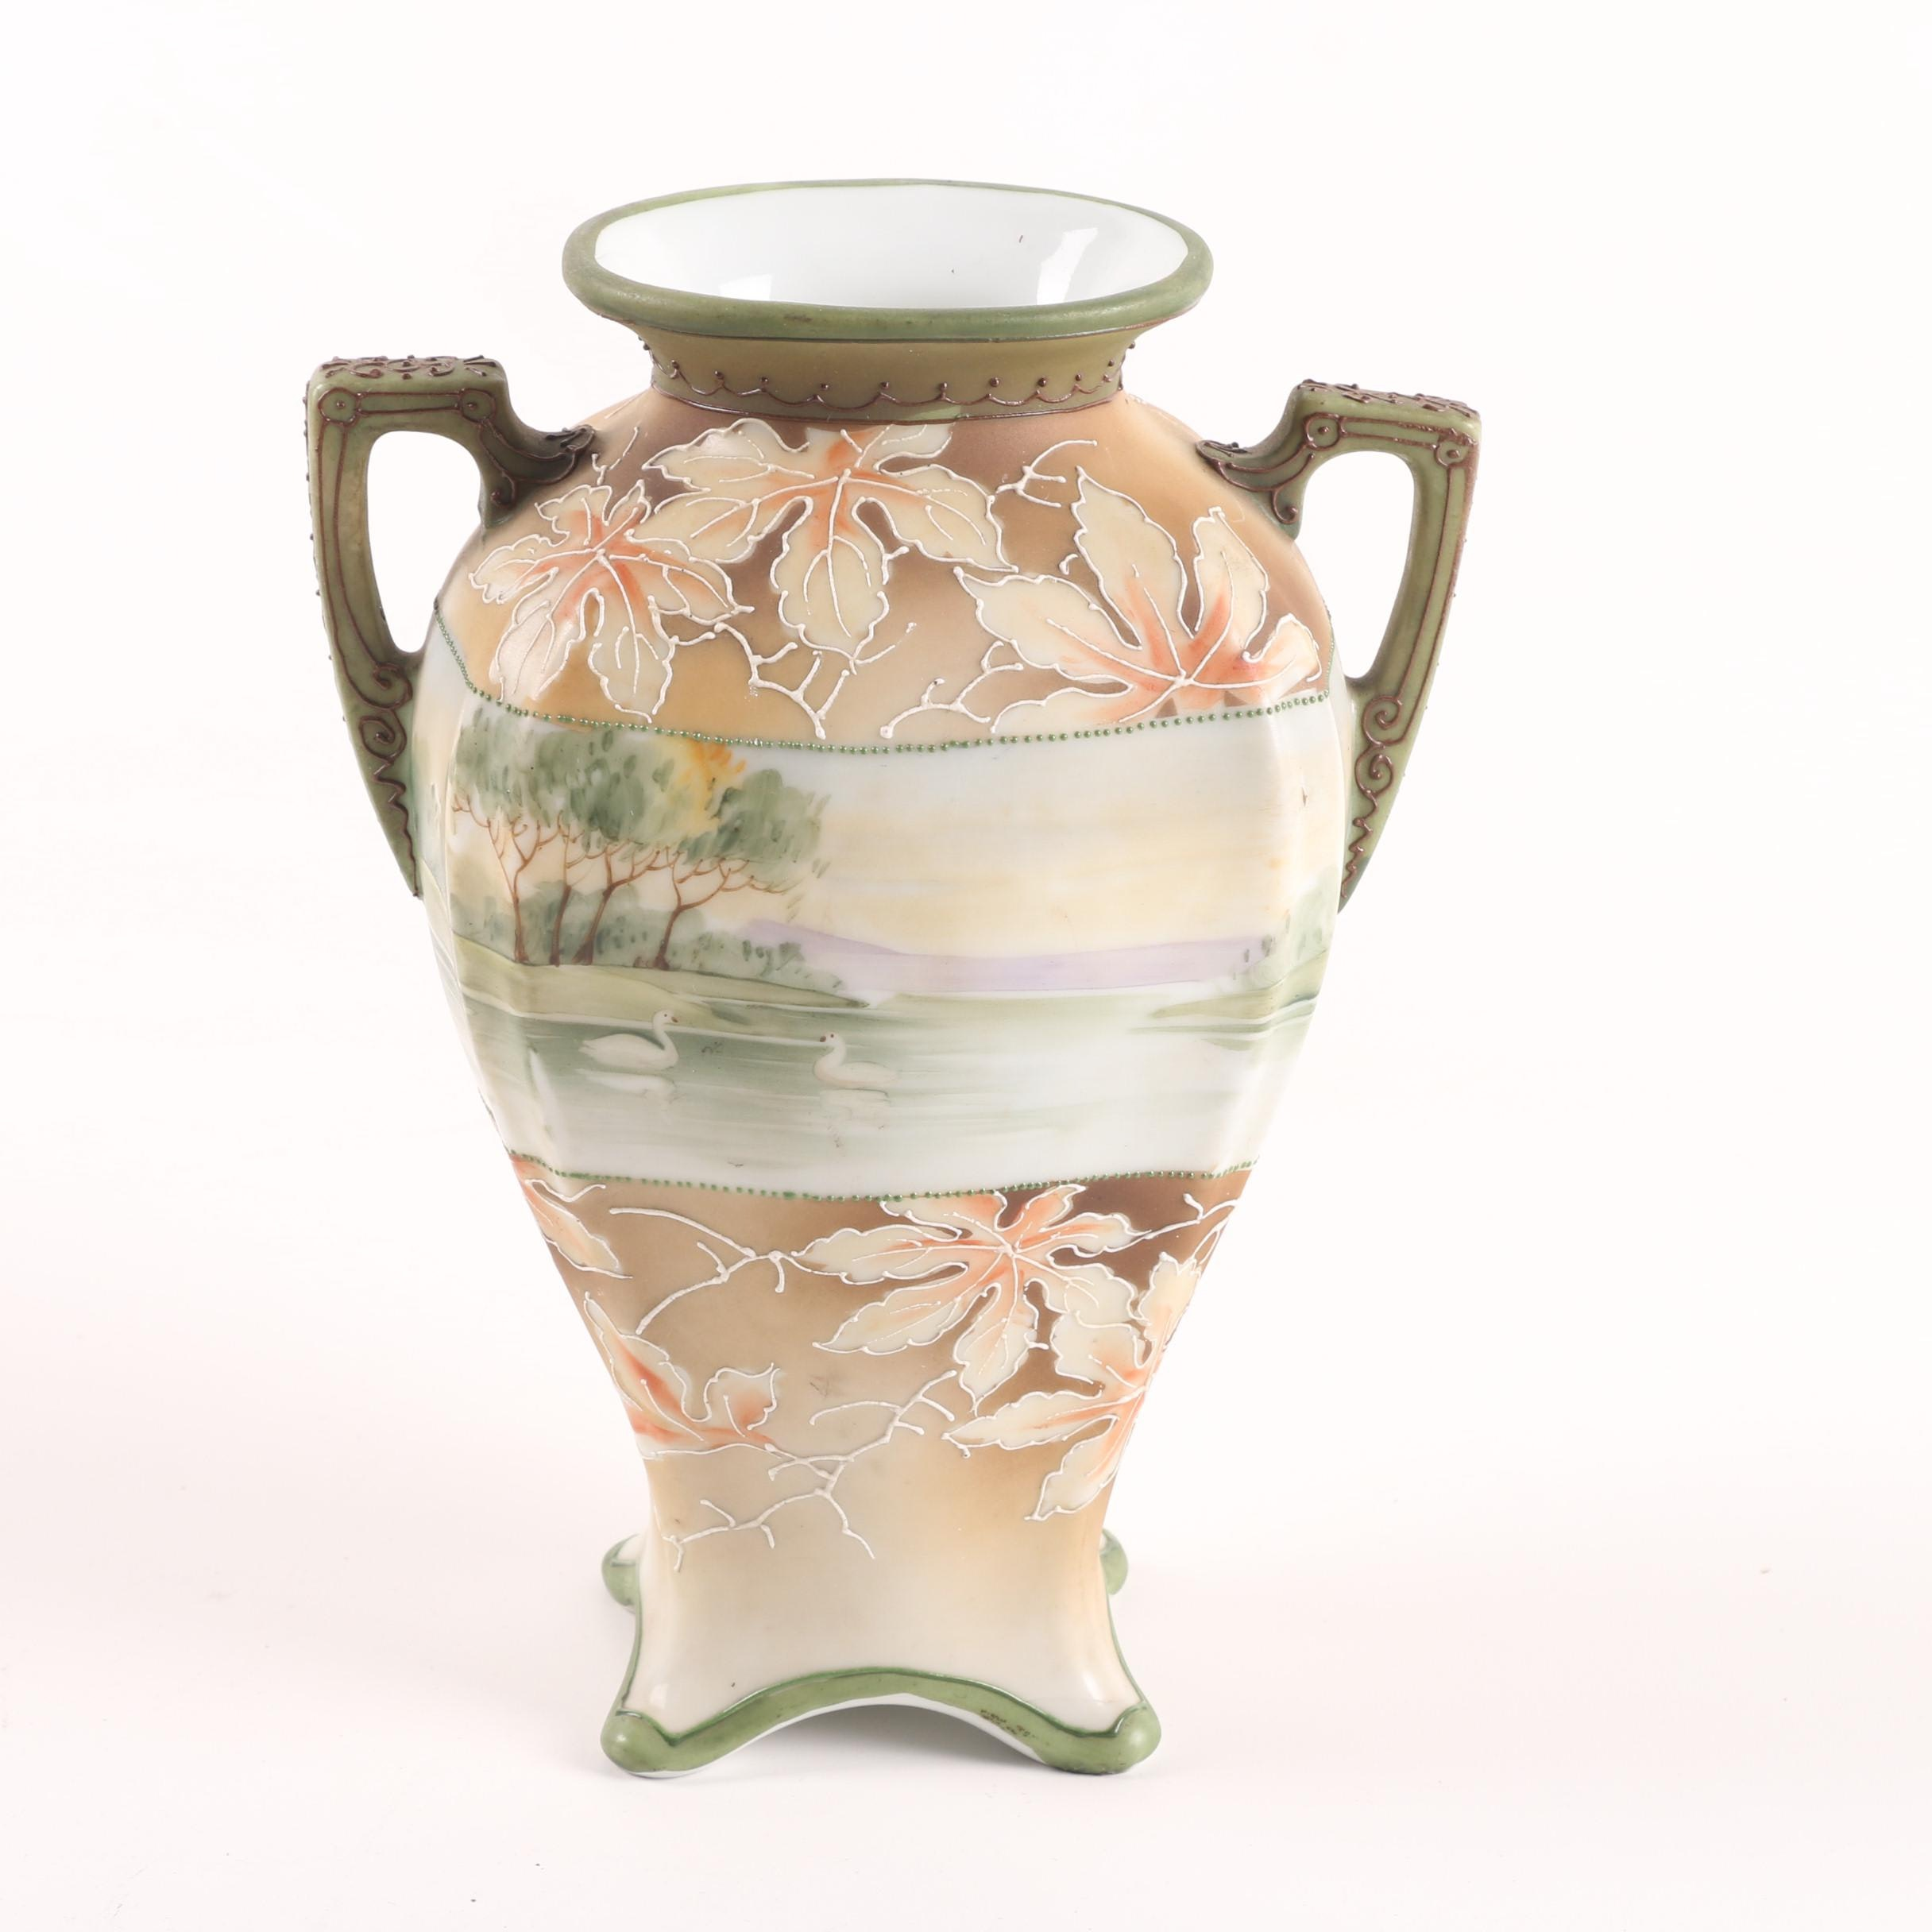 Hand-Painted Noritake Scenic Porcelain Vase with Moriage Details